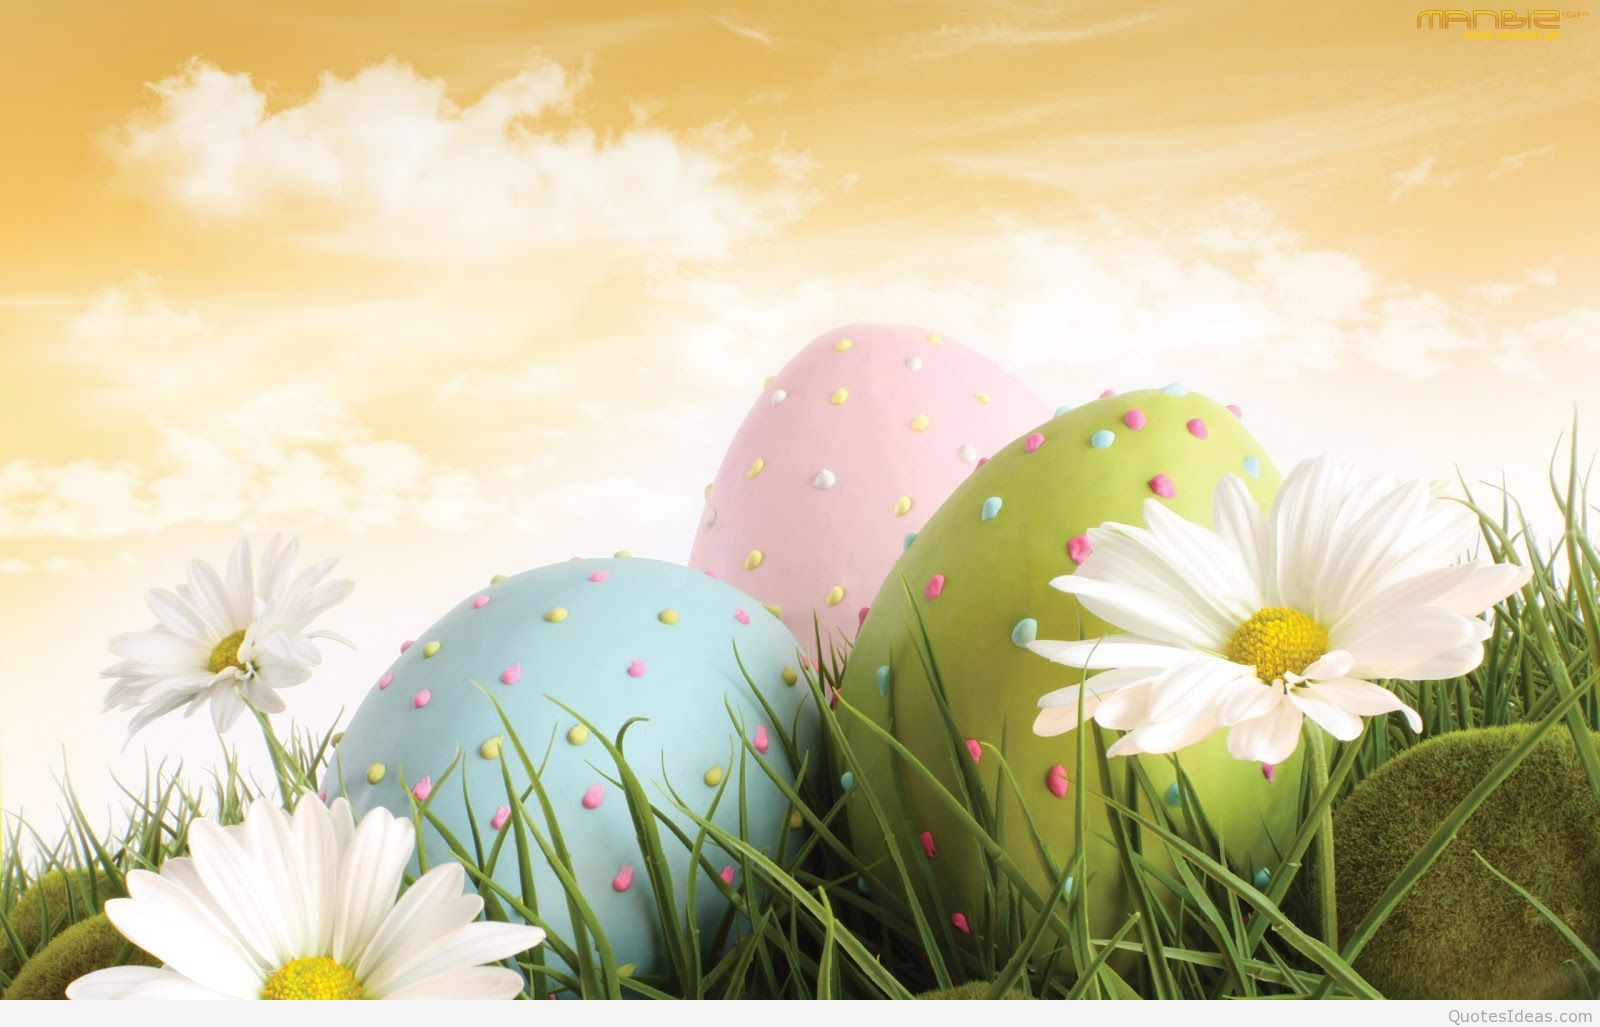 Happy Easter wallpapers and quotes 2015 2016 1600x1027